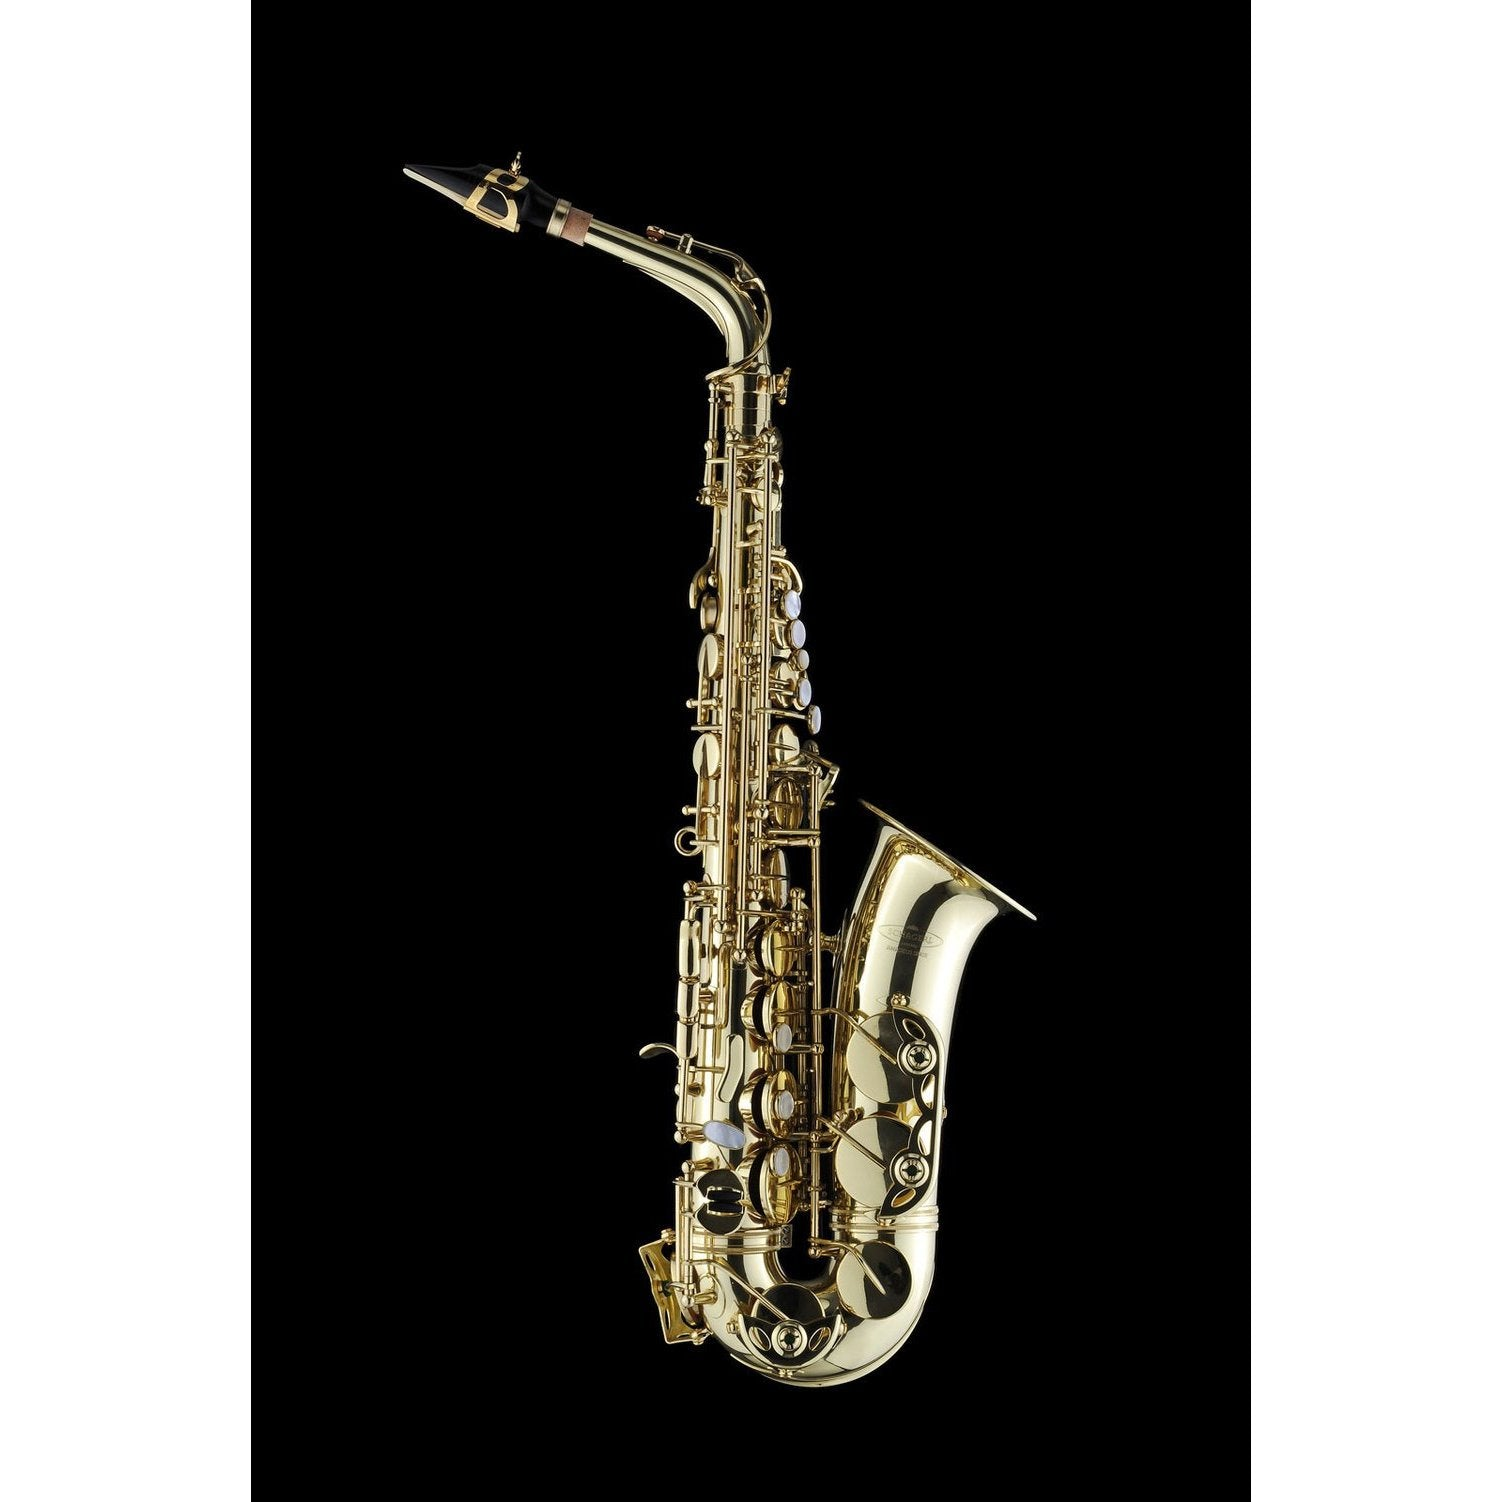 Schagerl - Model 66 Alto Saxophones-Saxophone-Schagerl-Lacquered-With-Music Elements